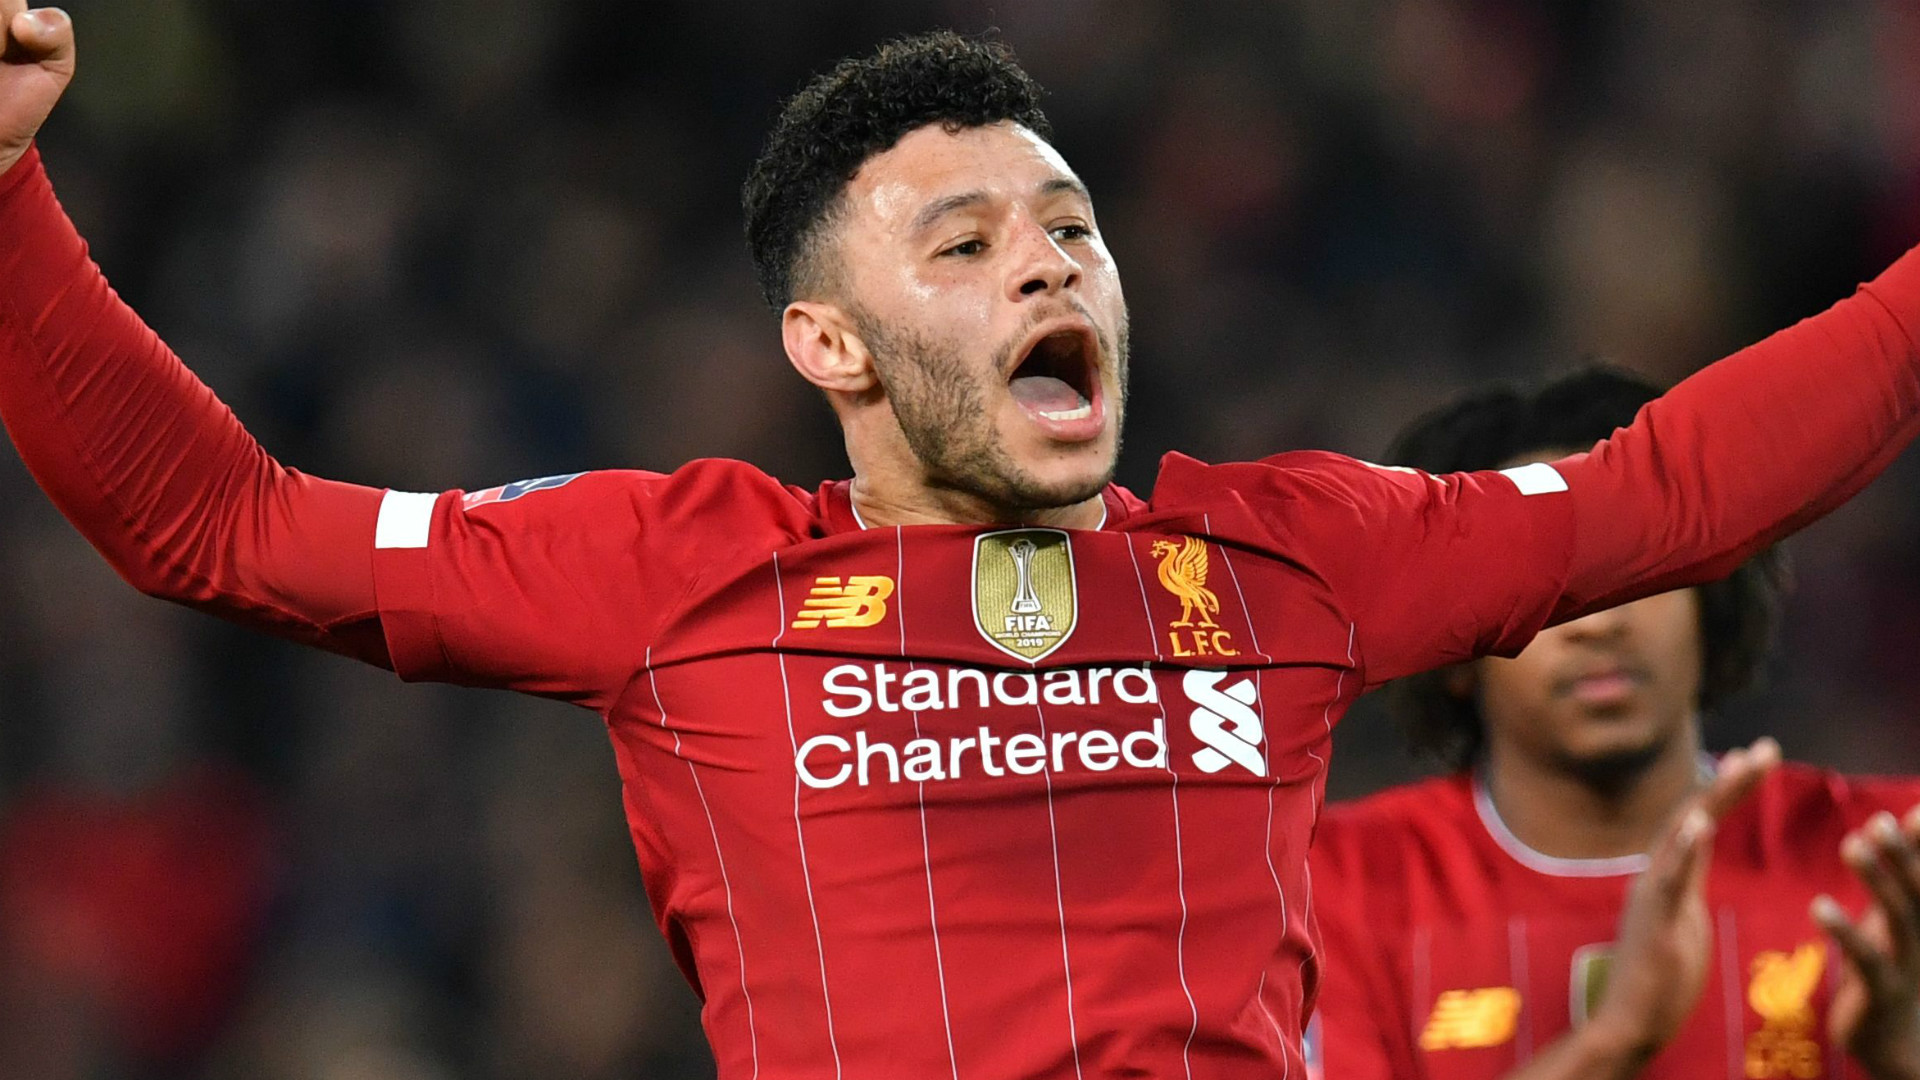 'He's a difference-maker' - Klopp excited by Oxlade-Chamberlain's imminent Liverpool return